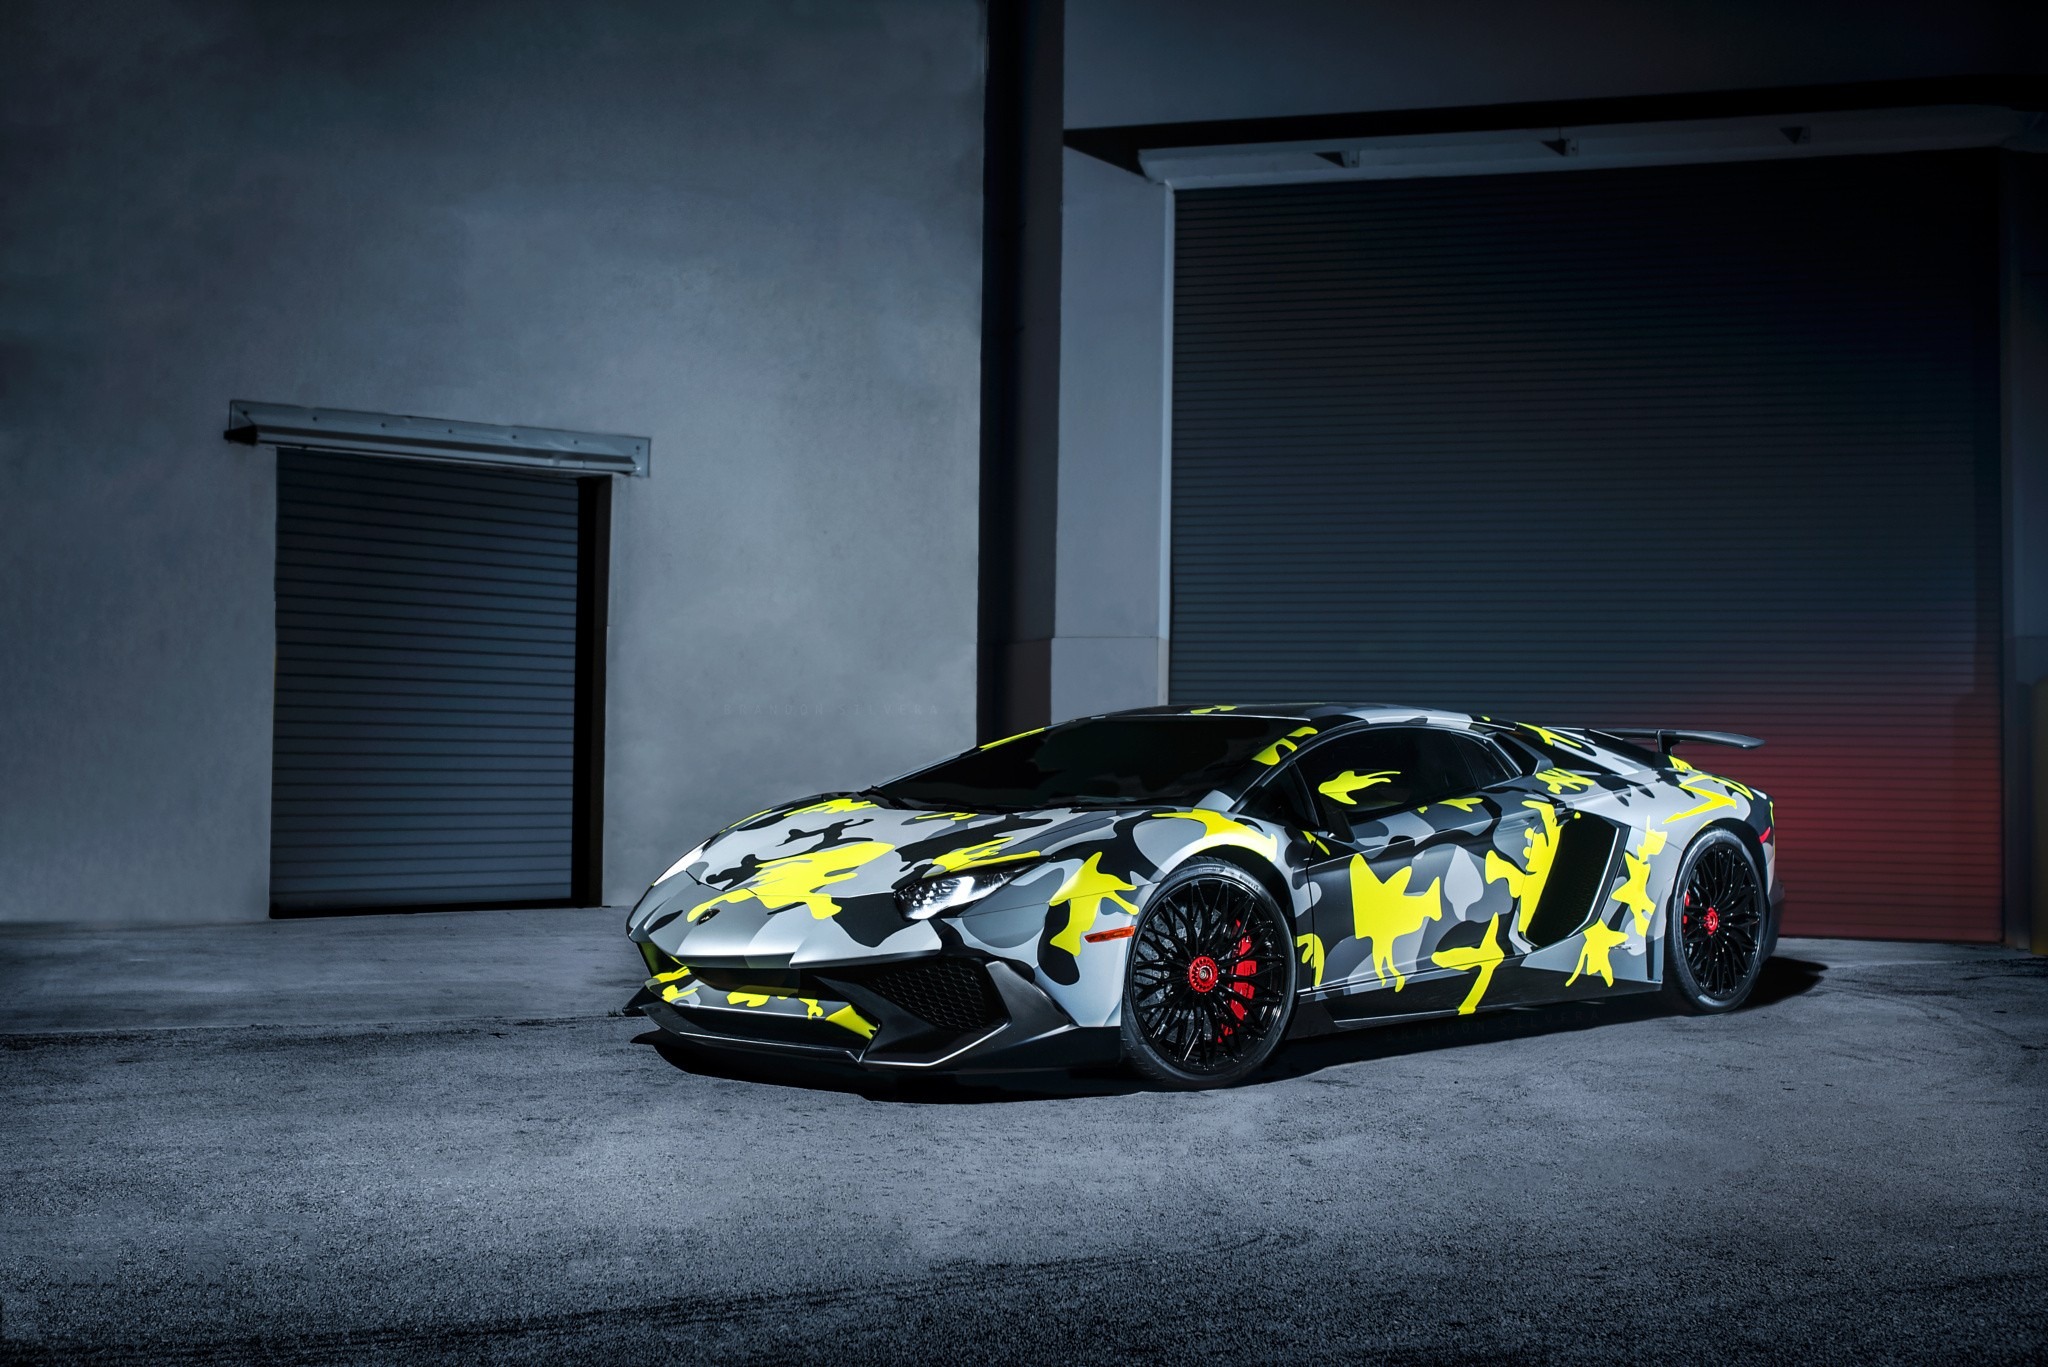 Lamborghini Aventador Modified Hd Cars 4k Wallpapers Images Backgrounds Photos And Pictures